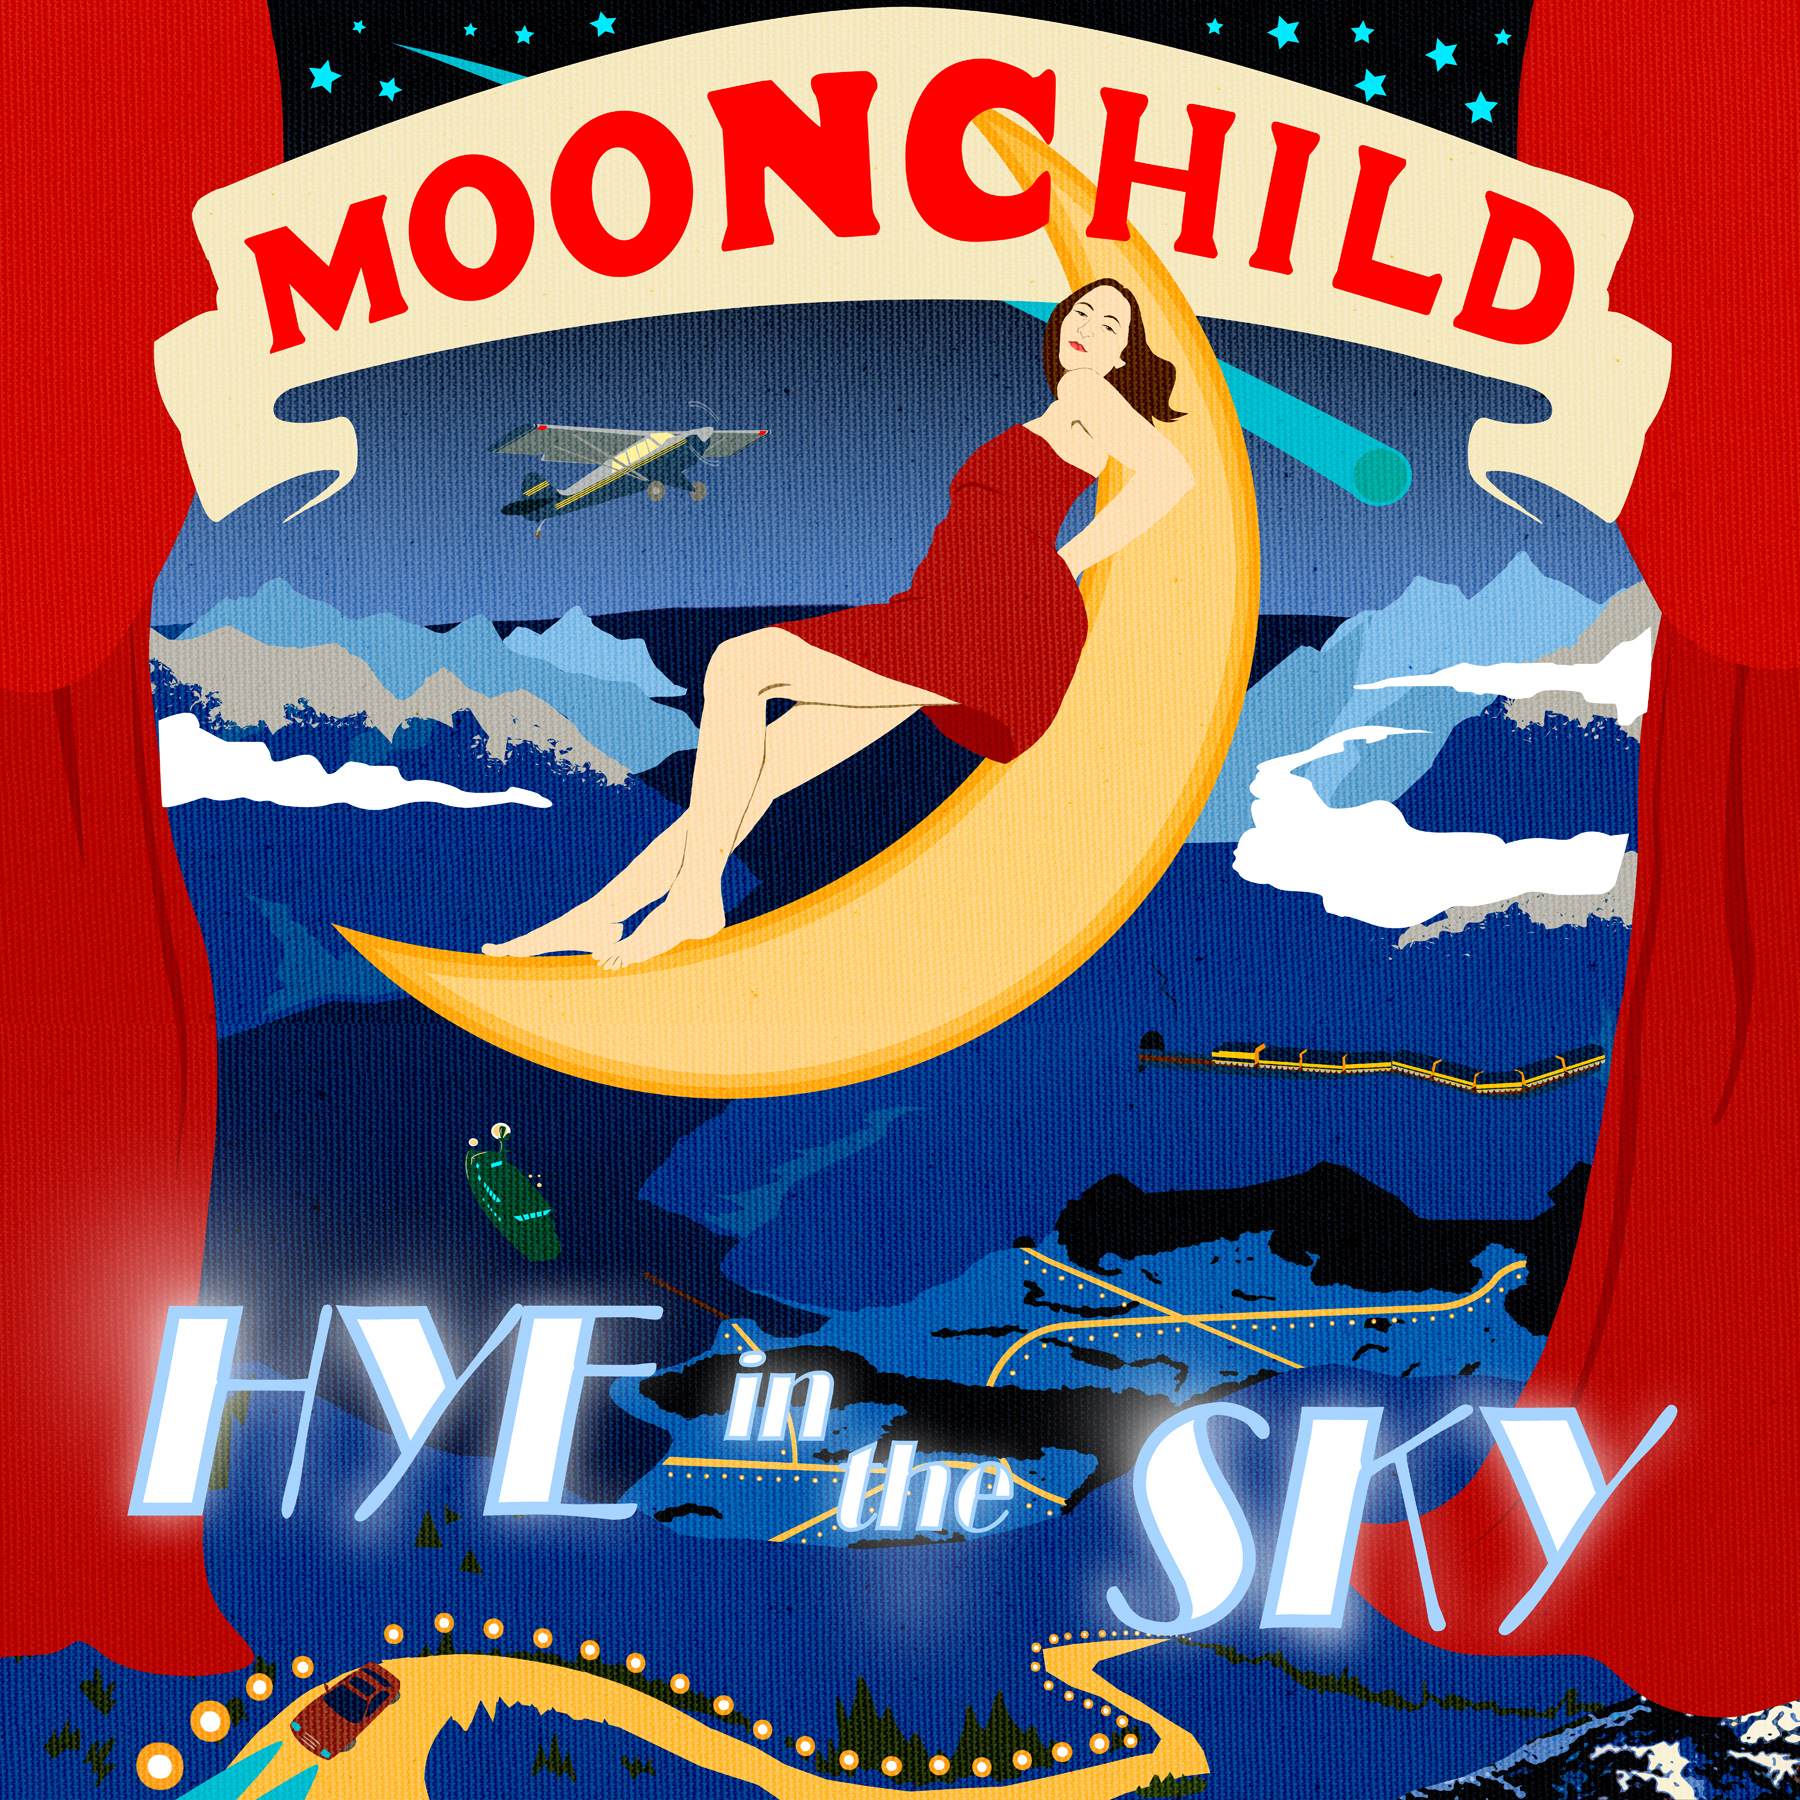 Moon Child - Hye in the Sky